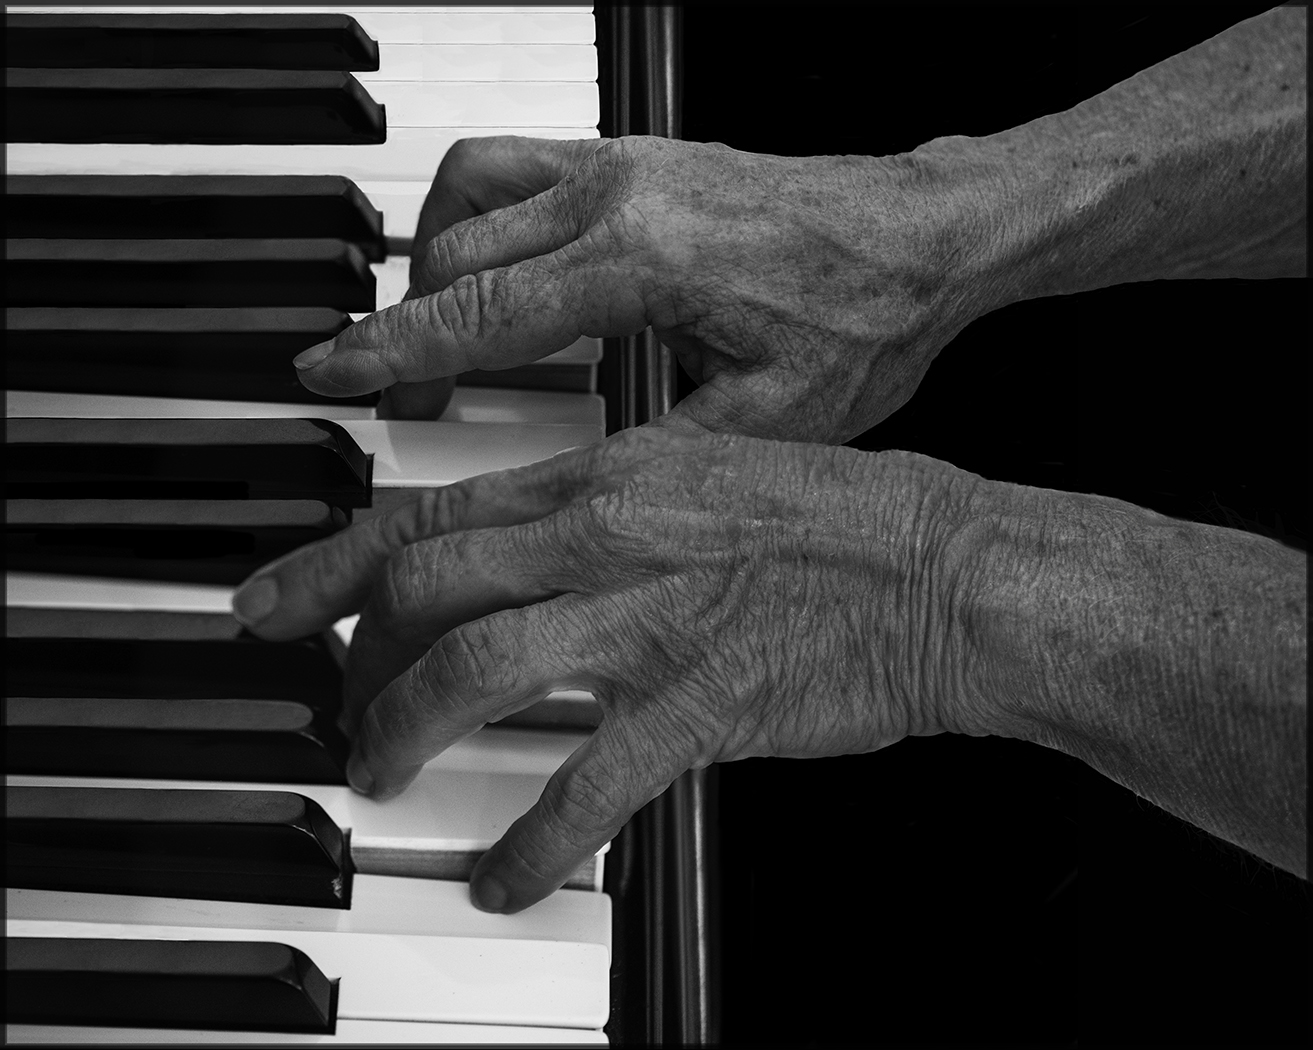 Piano Hands - George Peterson